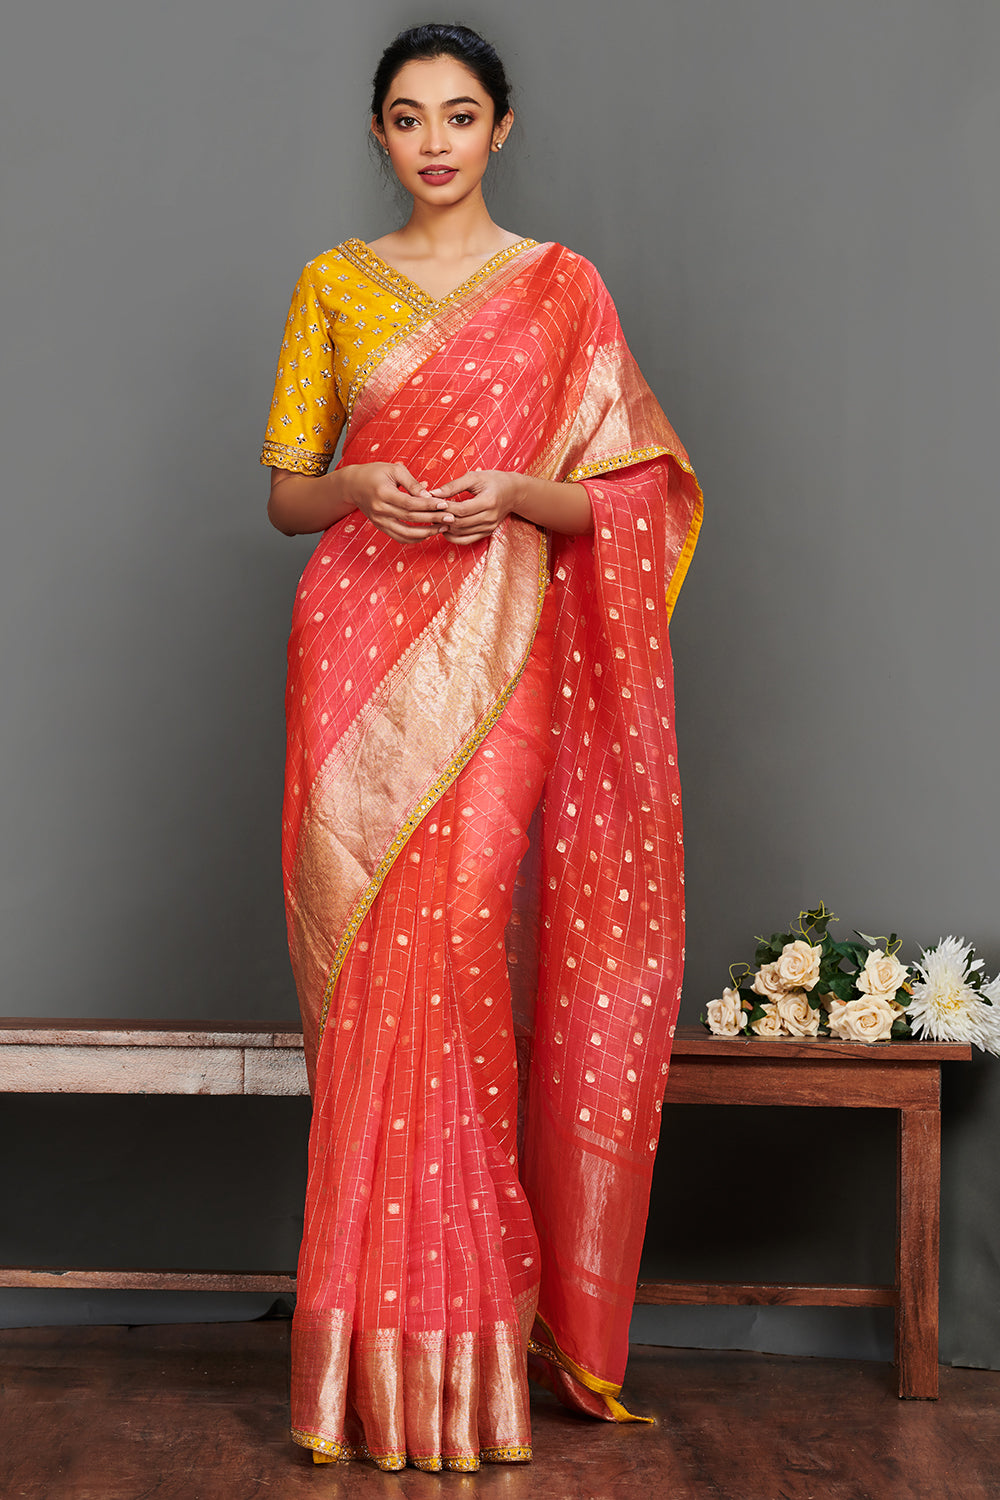 Buy stunning reddish pink embroidered saree online in USA with yellow saree blouse. Make a fashion statement on festive occasions and weddings with designer sarees, embroidered saris, handwoven saris, party wear sarees from Pure Elegance Indian fashion store in USA.-full view